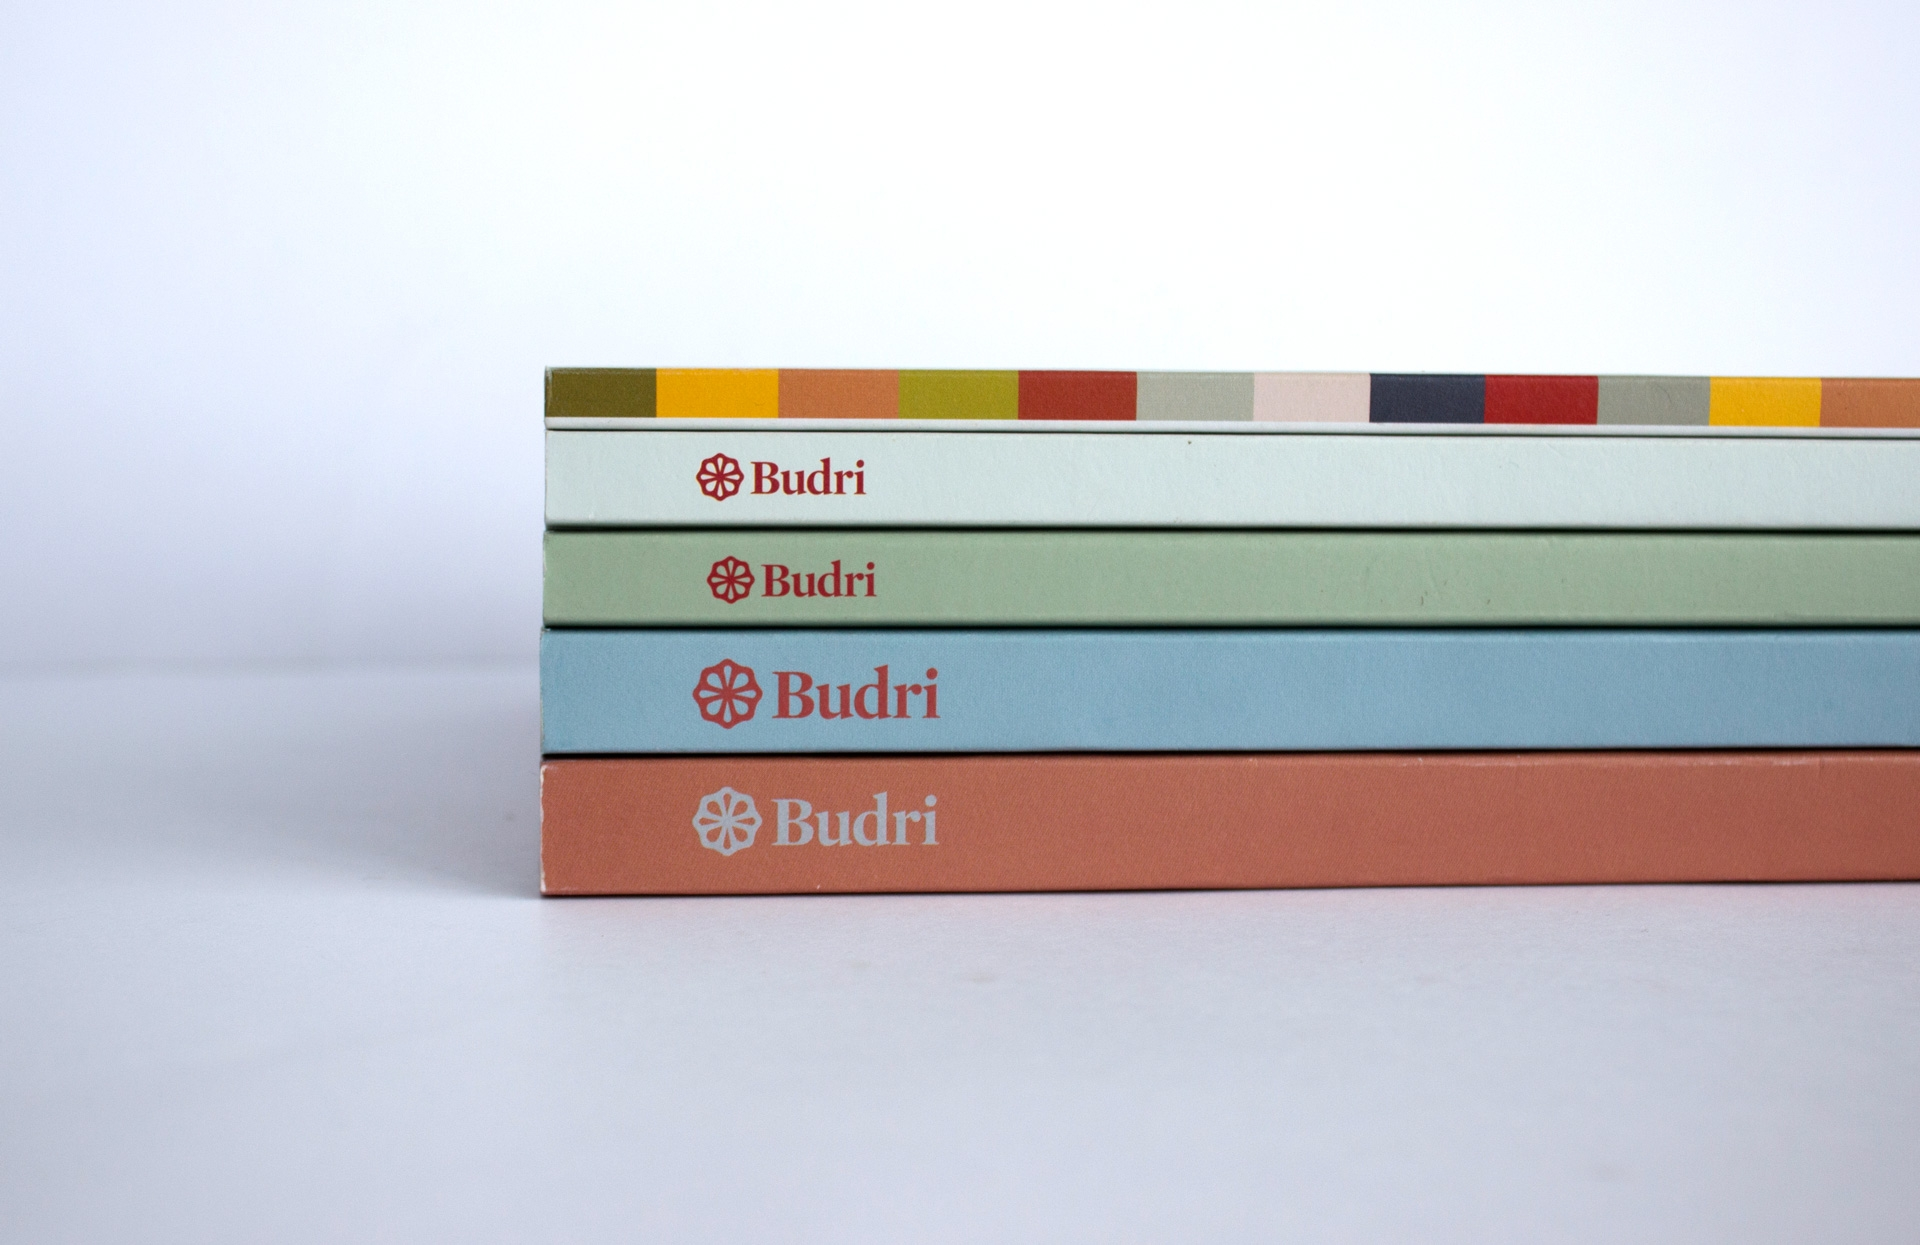 Cataloghi | Budri - Centroffset stampa, packaging, grafica